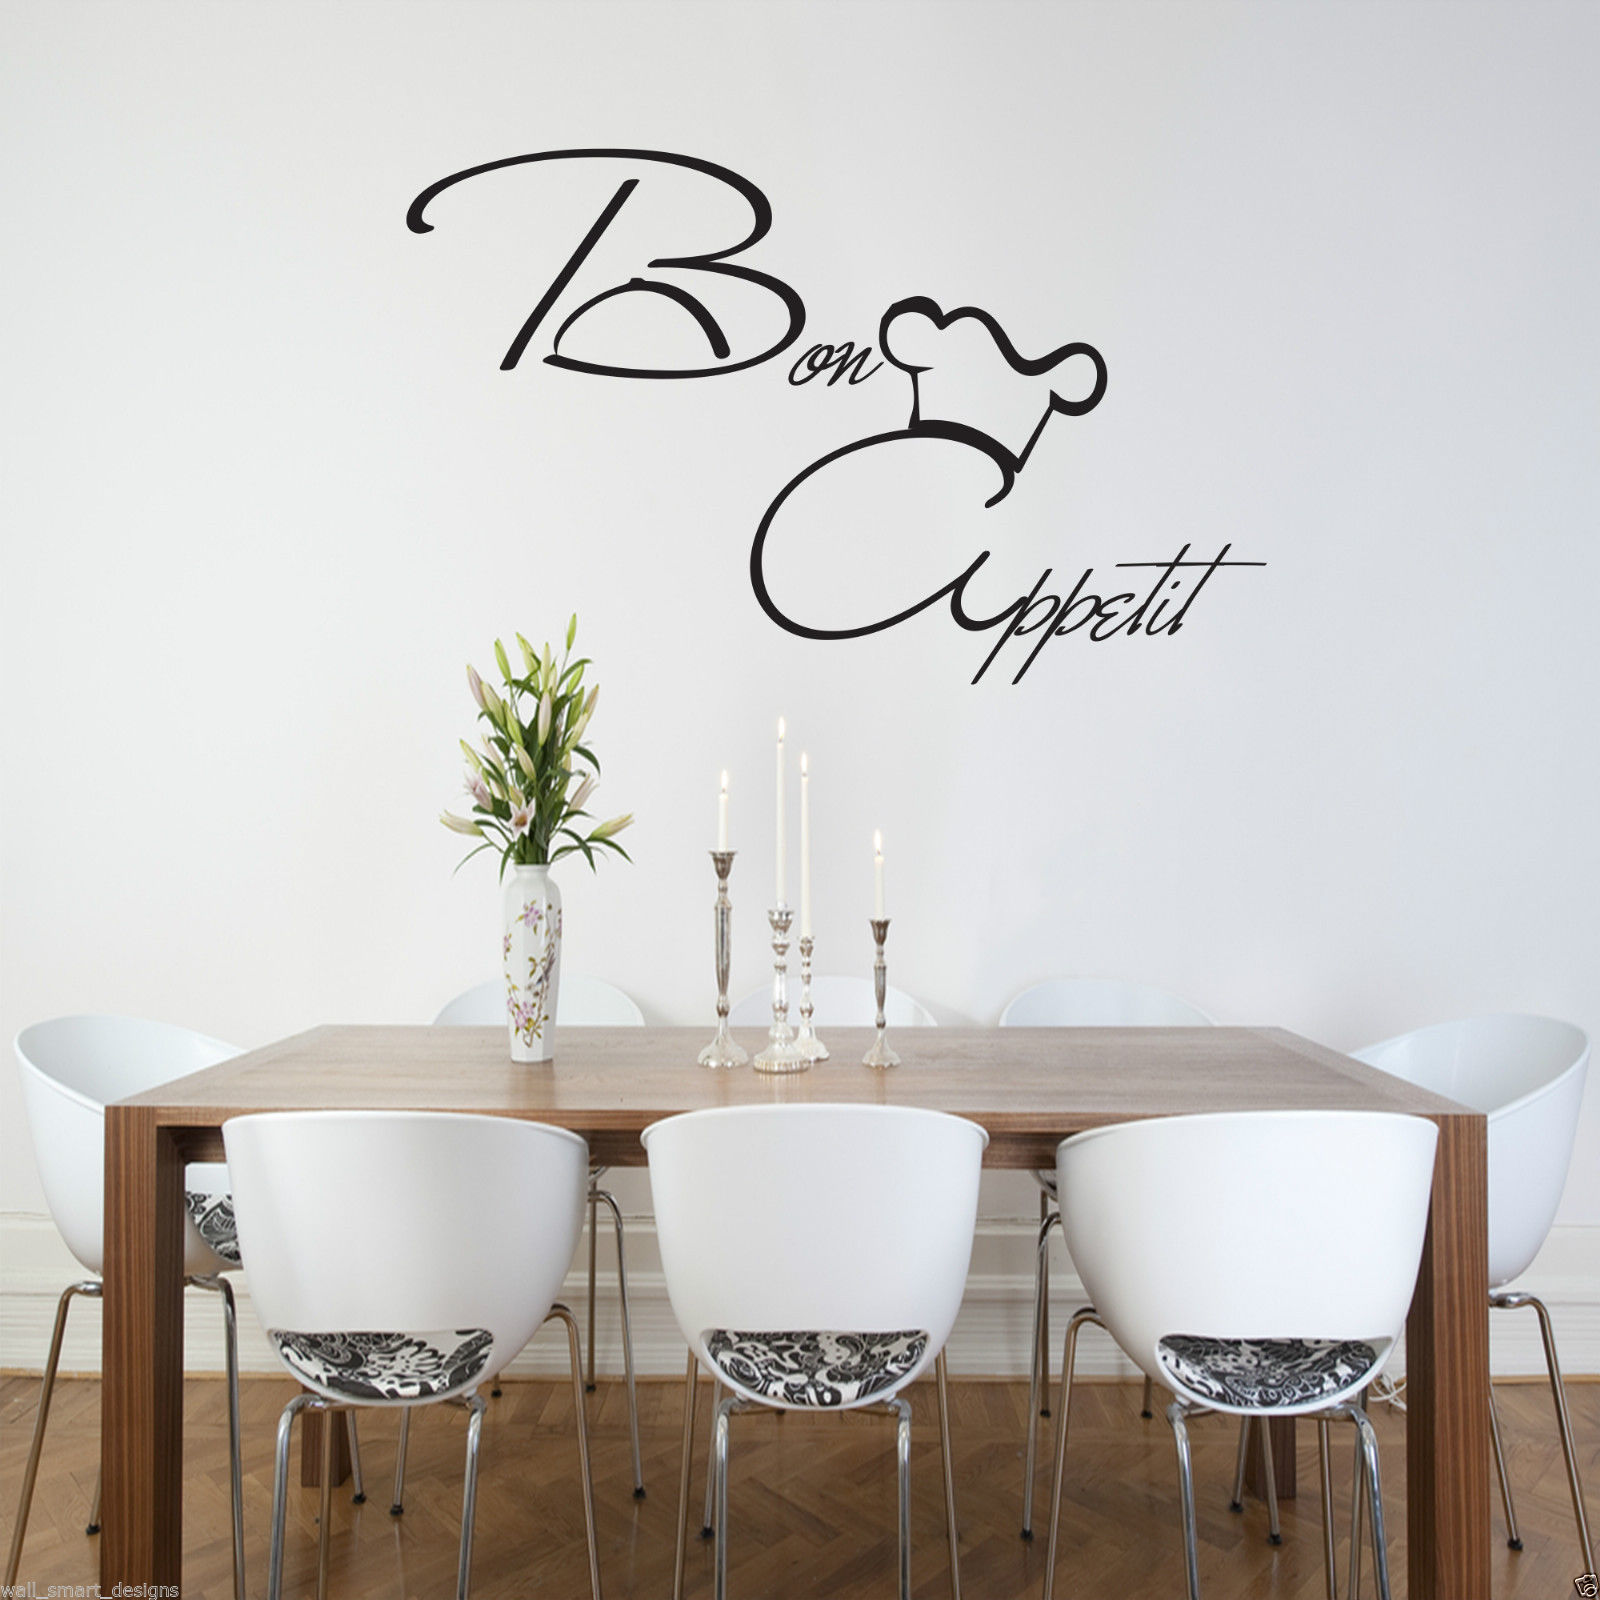 kitchen vinyl retro tables and chairs bon appetit wall art sticker quote decal mural stencil transfer